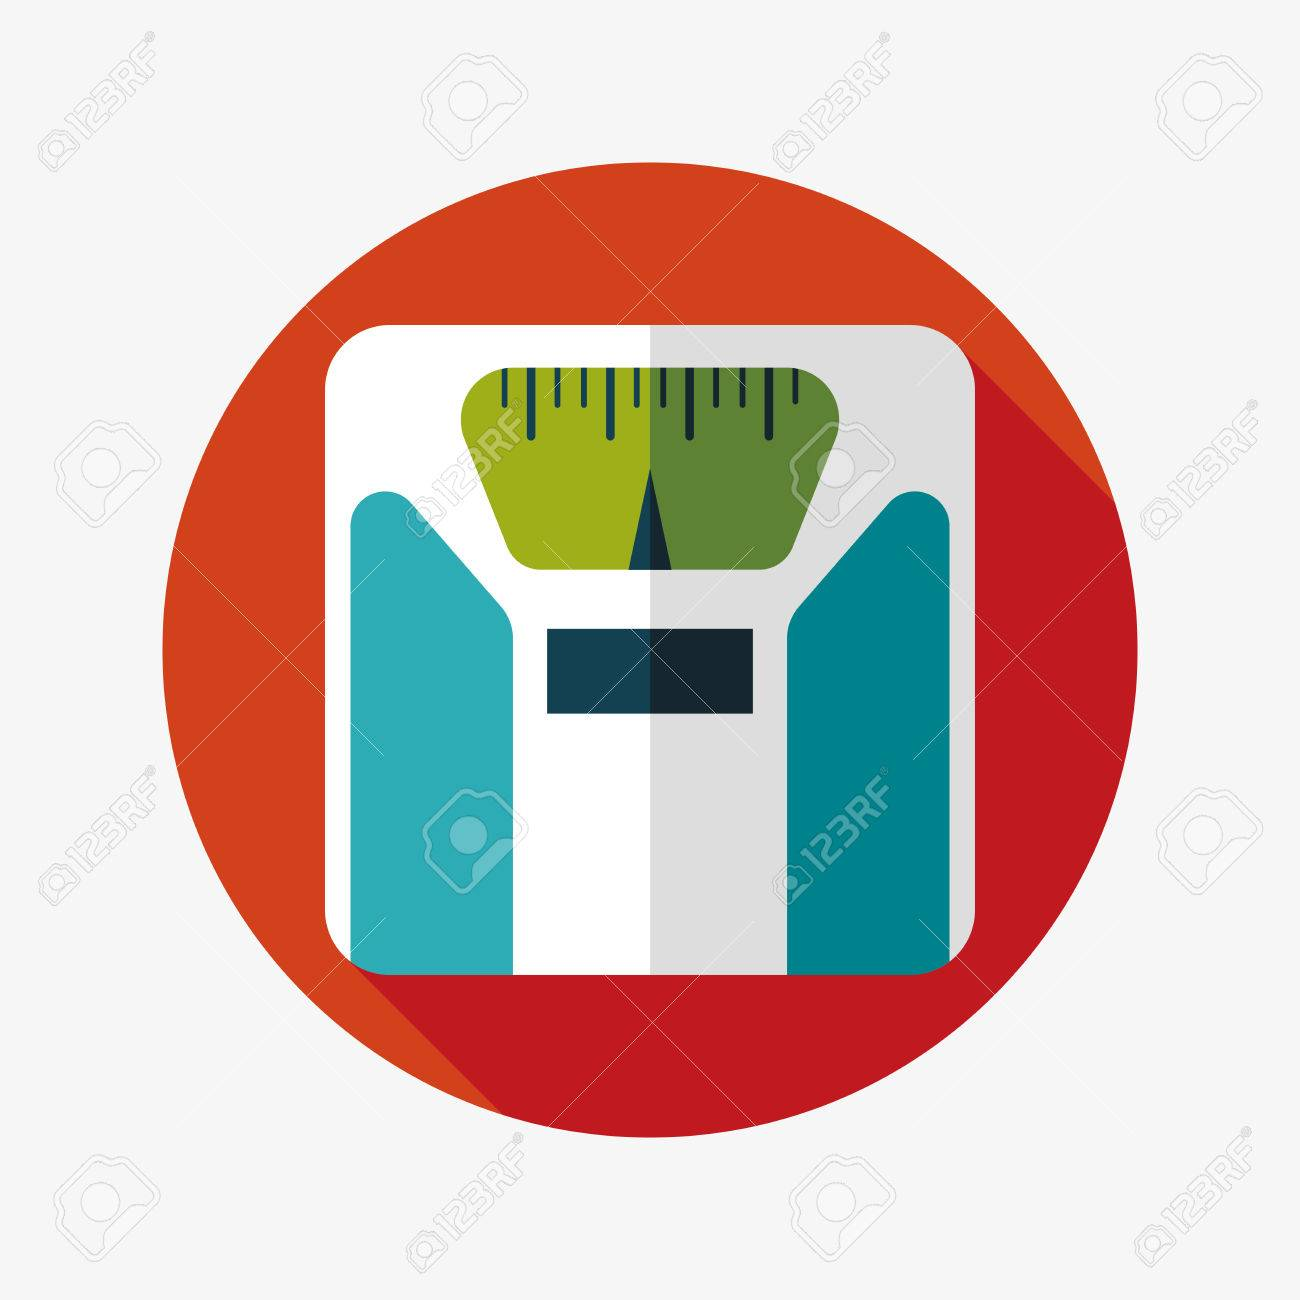 Flat style with long shadows, weight scale vector icon illustration. - 30578761